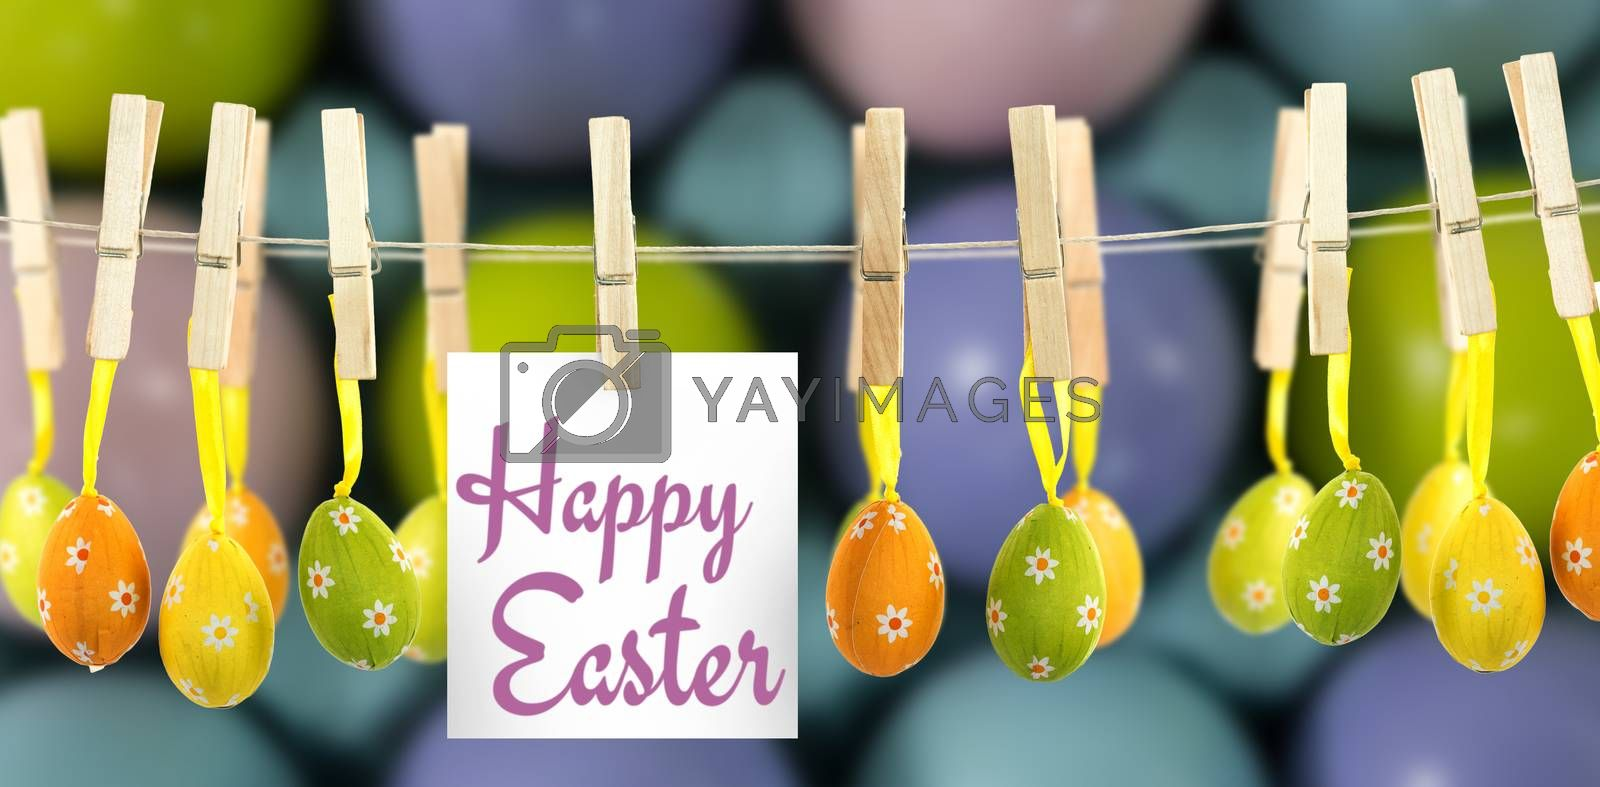 Happy easter logo against multicolored easter eggs in carton